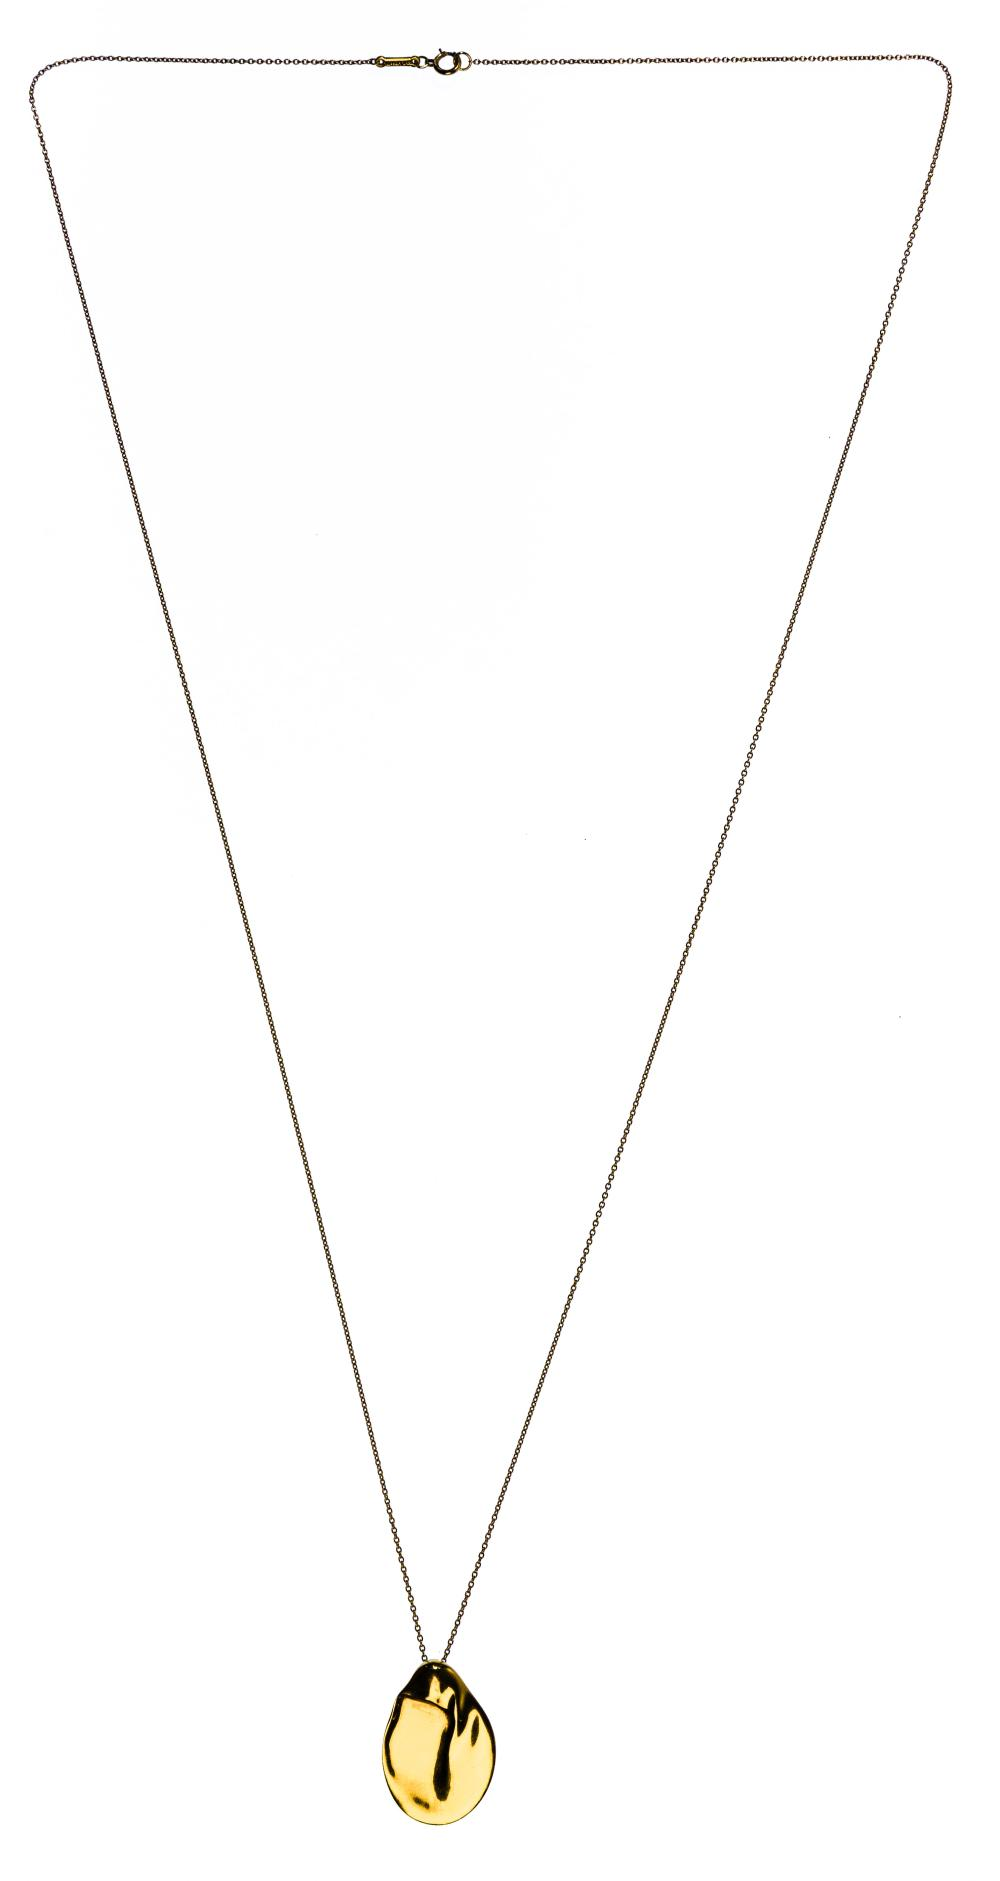 Tiffany & Co 18k Yellow Gold 'Madonna' Pendant and Necklace